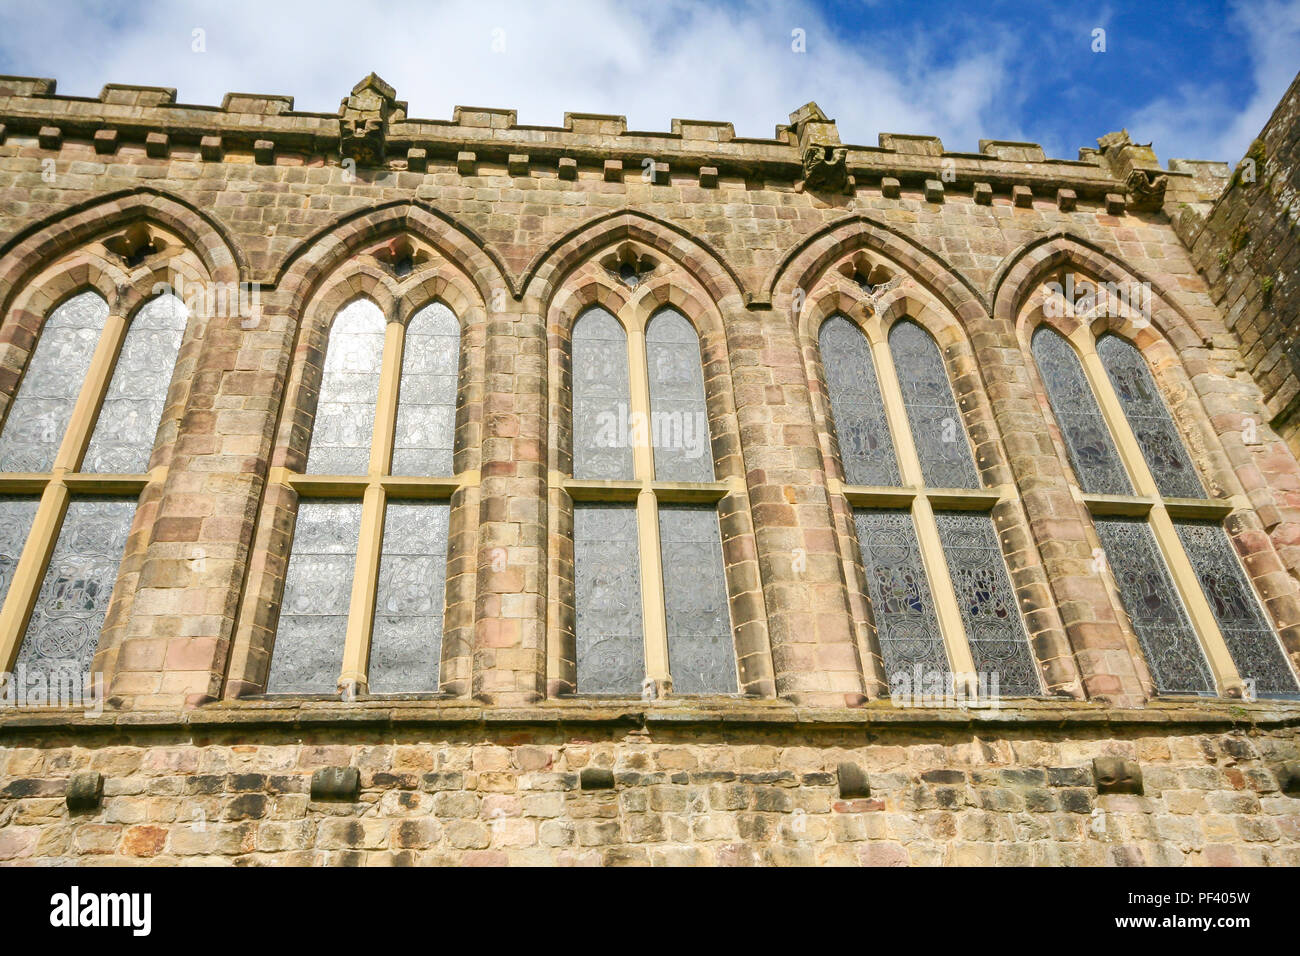 Architectural detail at the ruins of the priory at Bolton Abbey, Wharfedale, North Yorkshire. - Stock Image